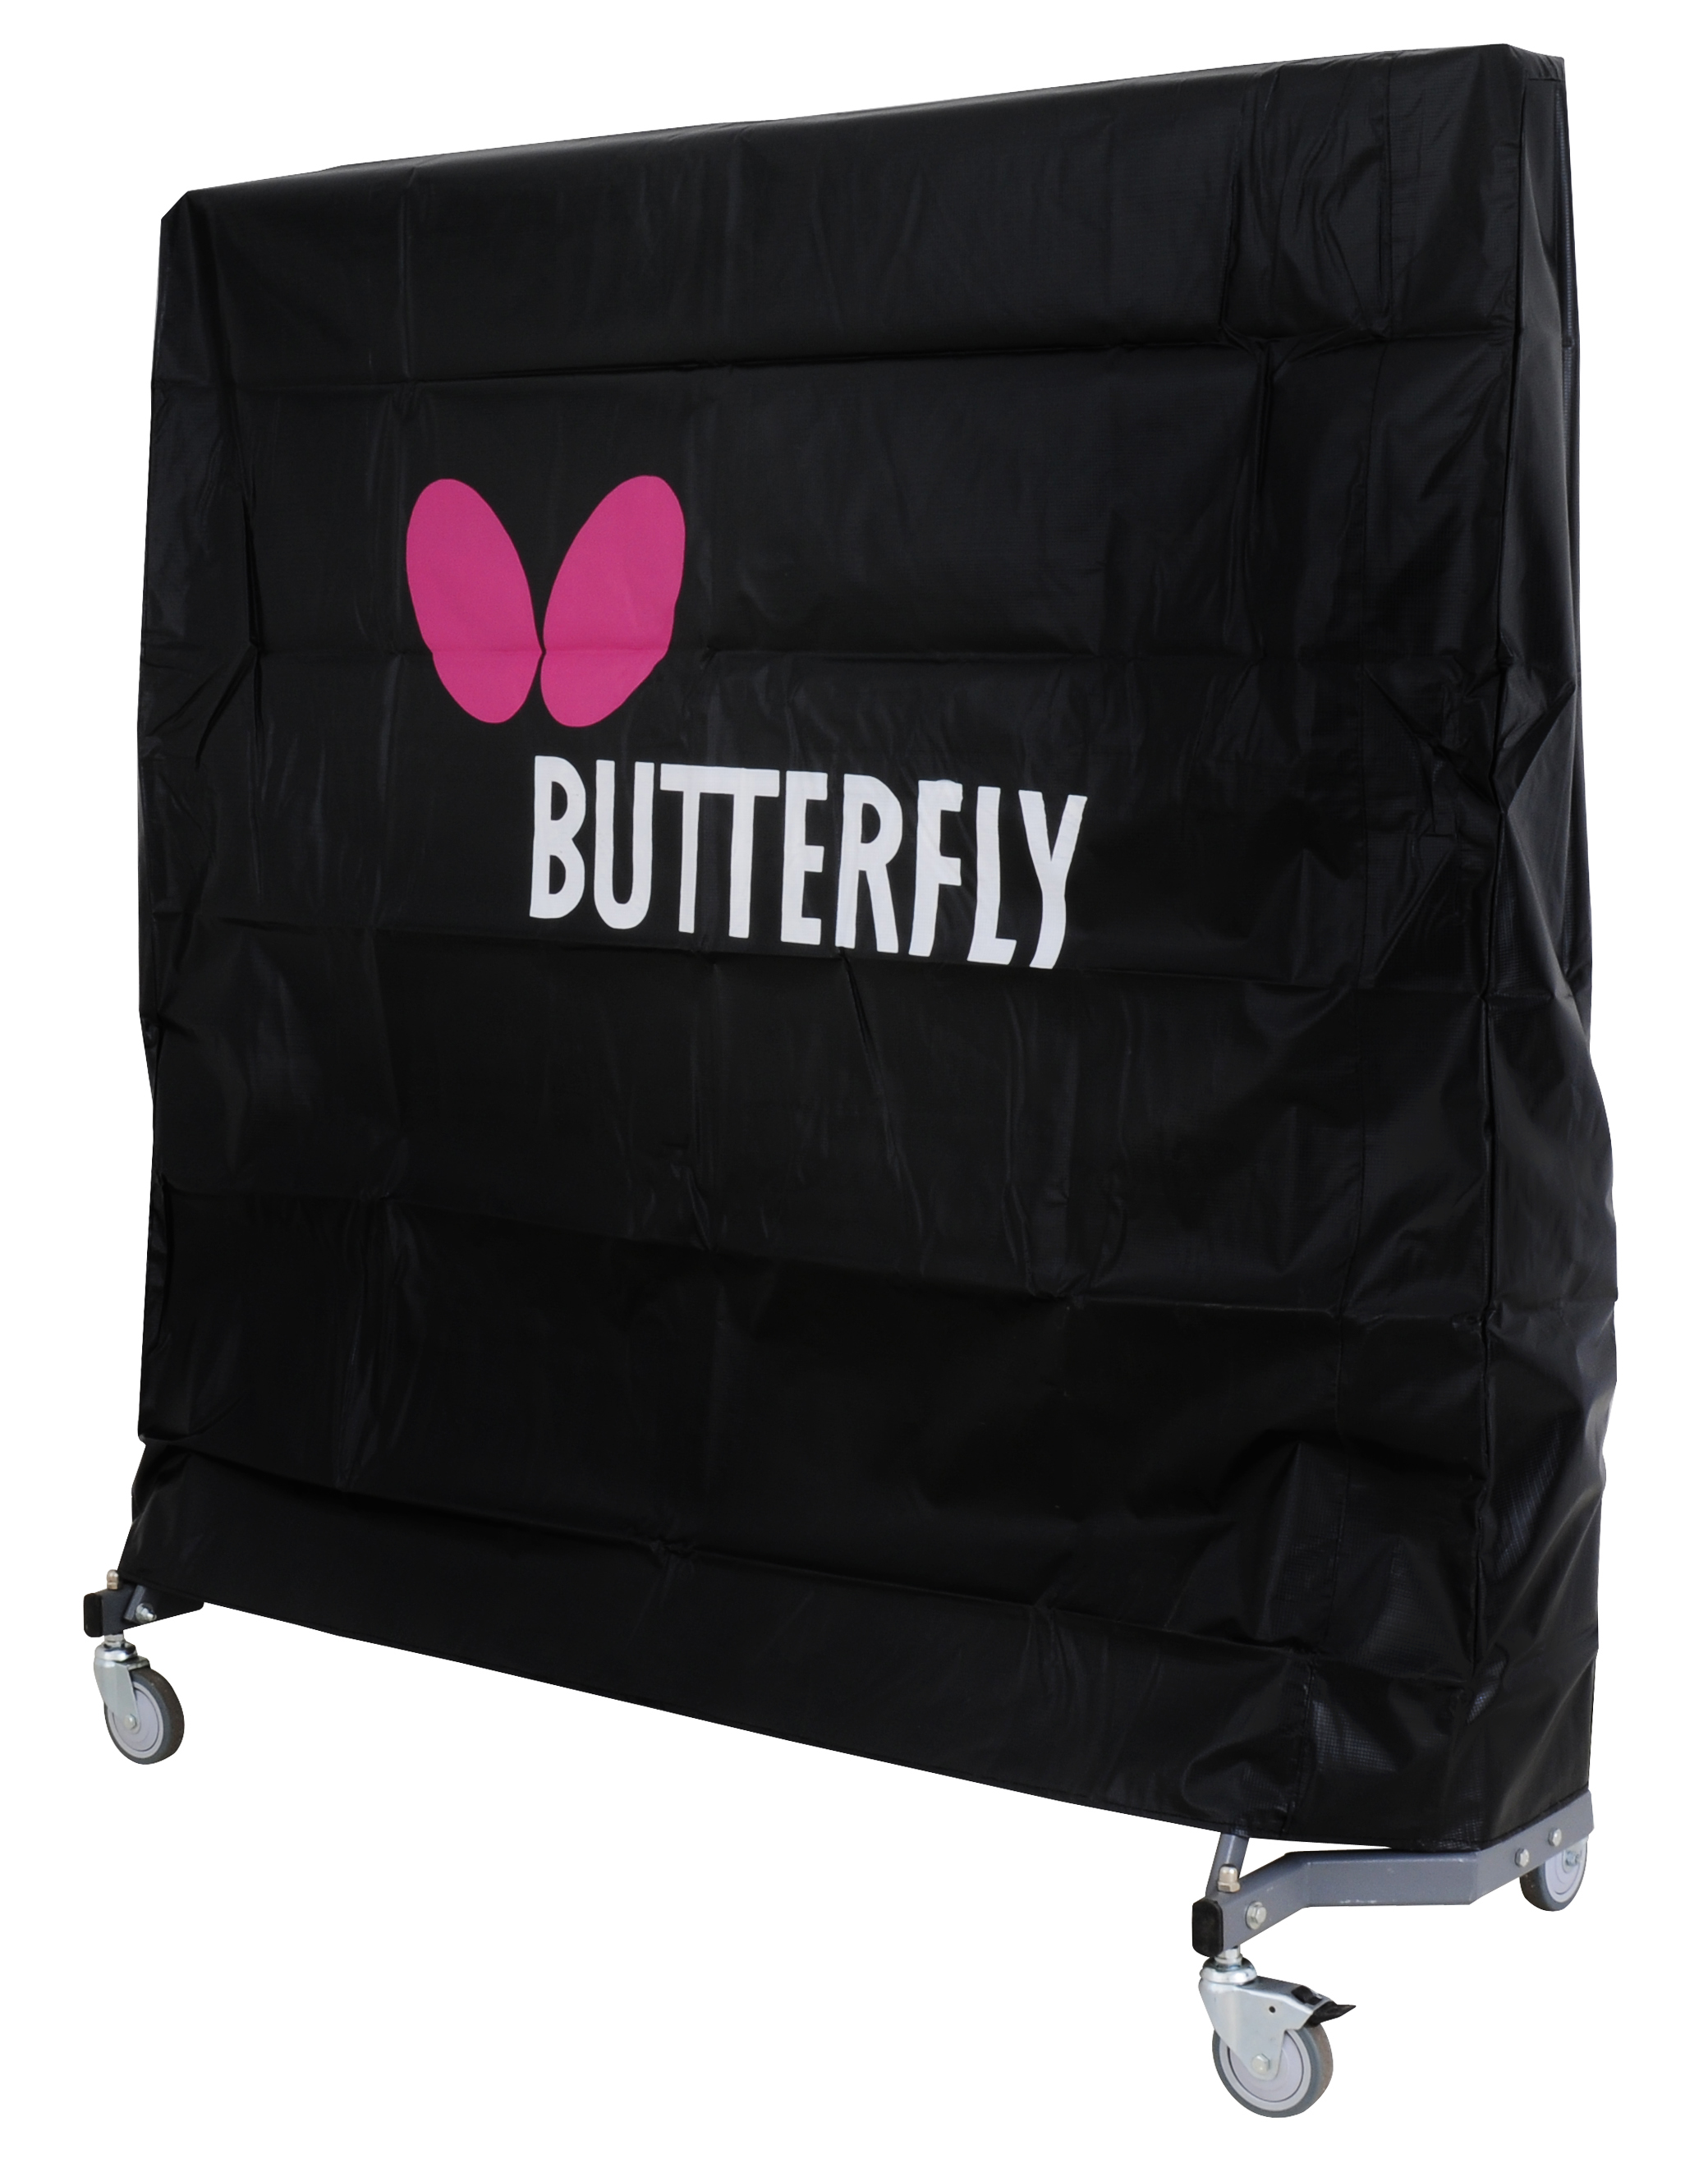 Butterfly Table Tennis Table Cover  Small